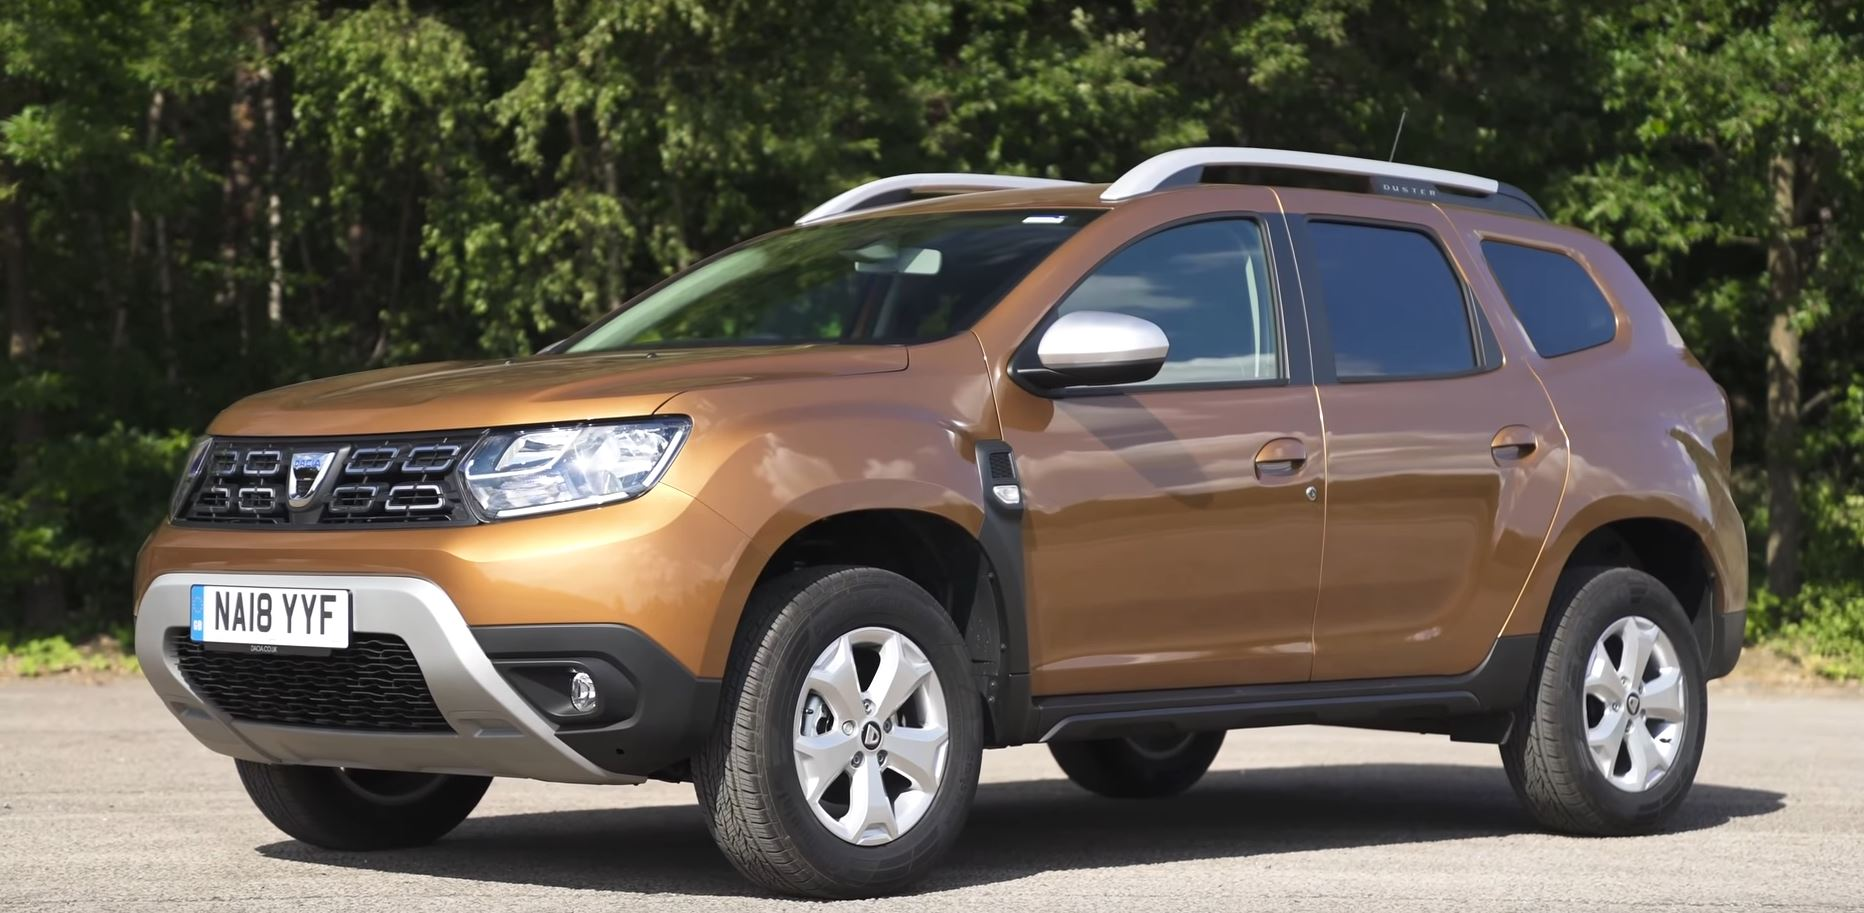 2019 Dacia Duster UK Review Says Renault Kadjar Is a Better Choice ... 499b2d7fdeb5